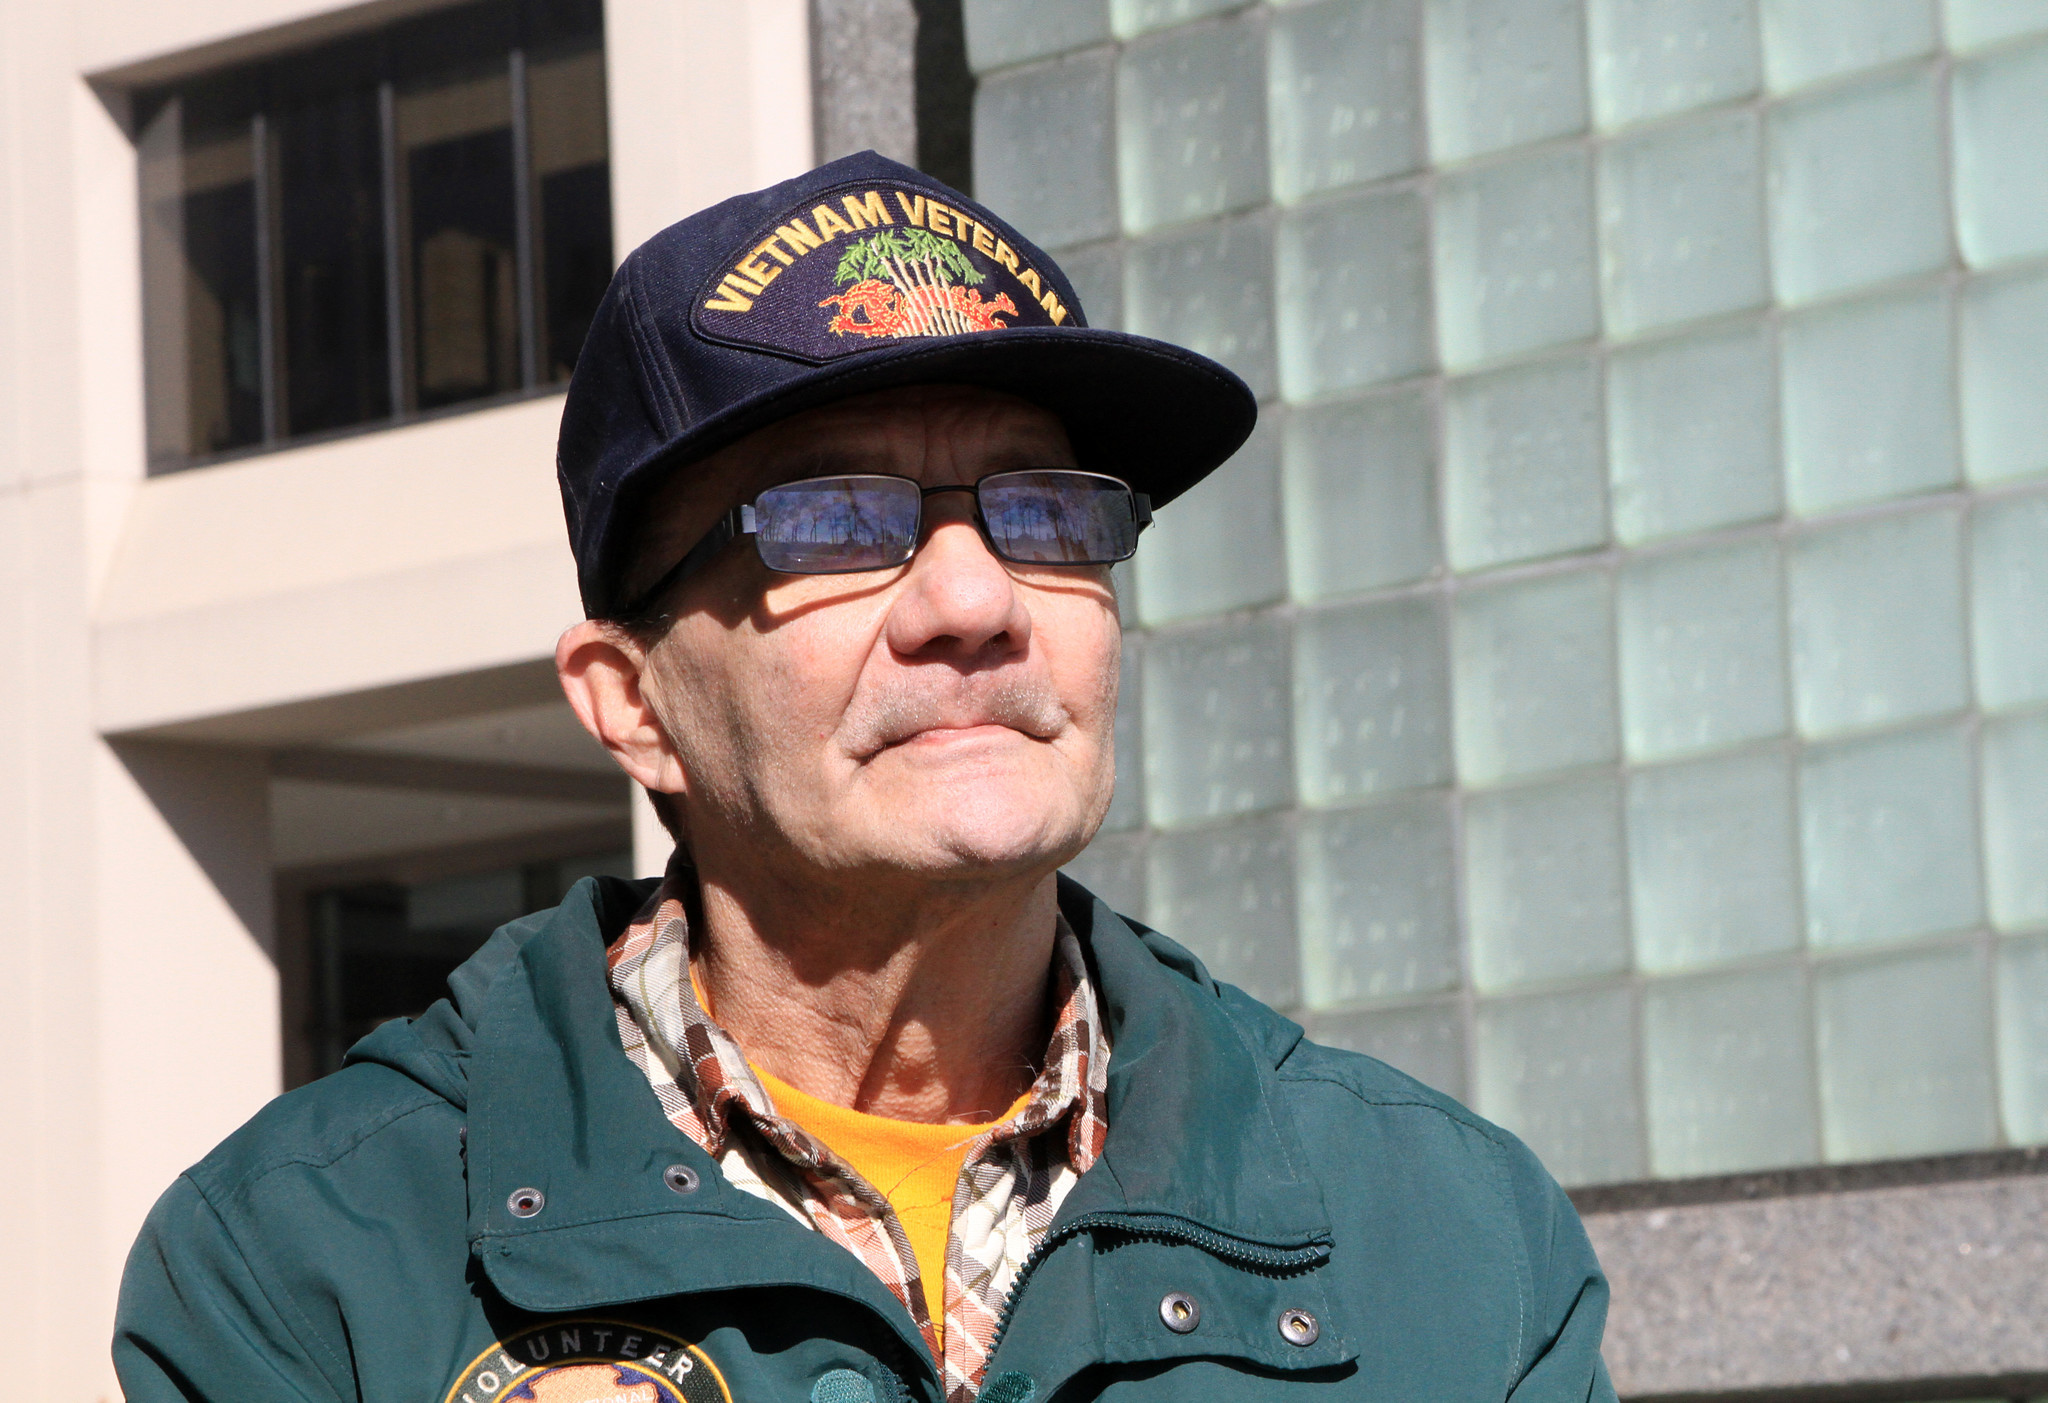 Vietnam vet and long time Statue of Liberty 'keeper of the flame' urges others to serve their communities